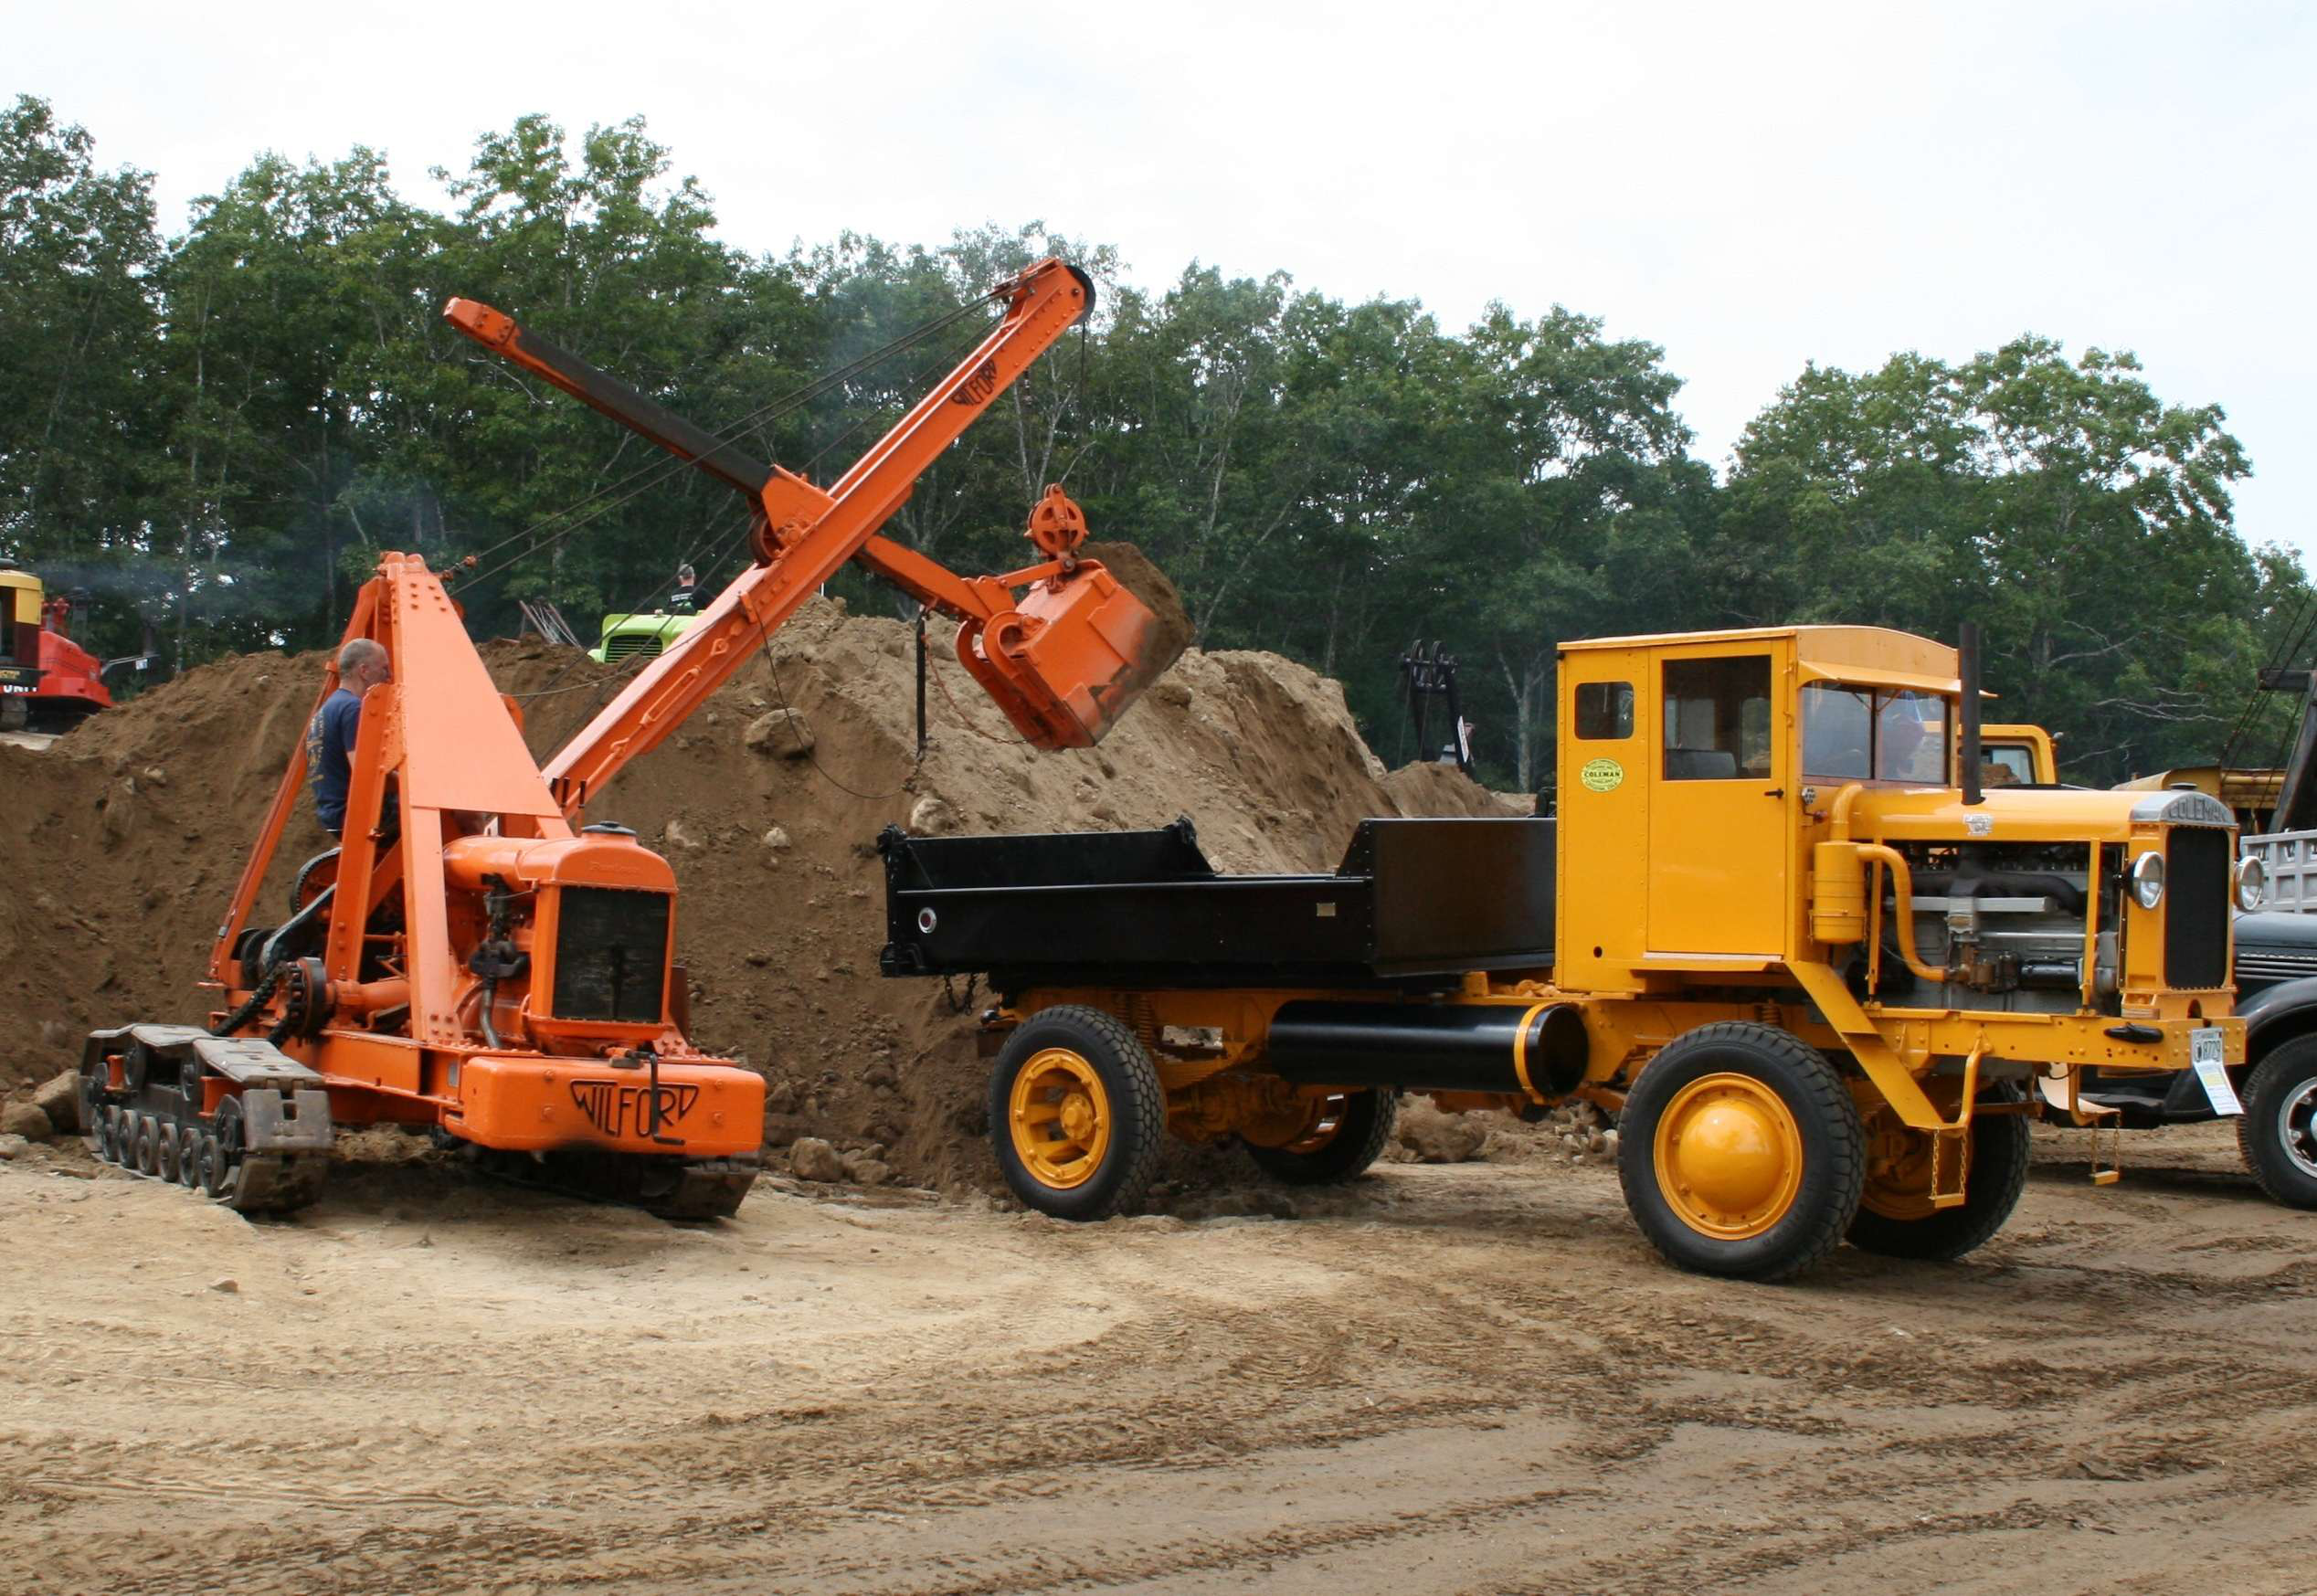 HCEA to display antique construction equipment at exposition